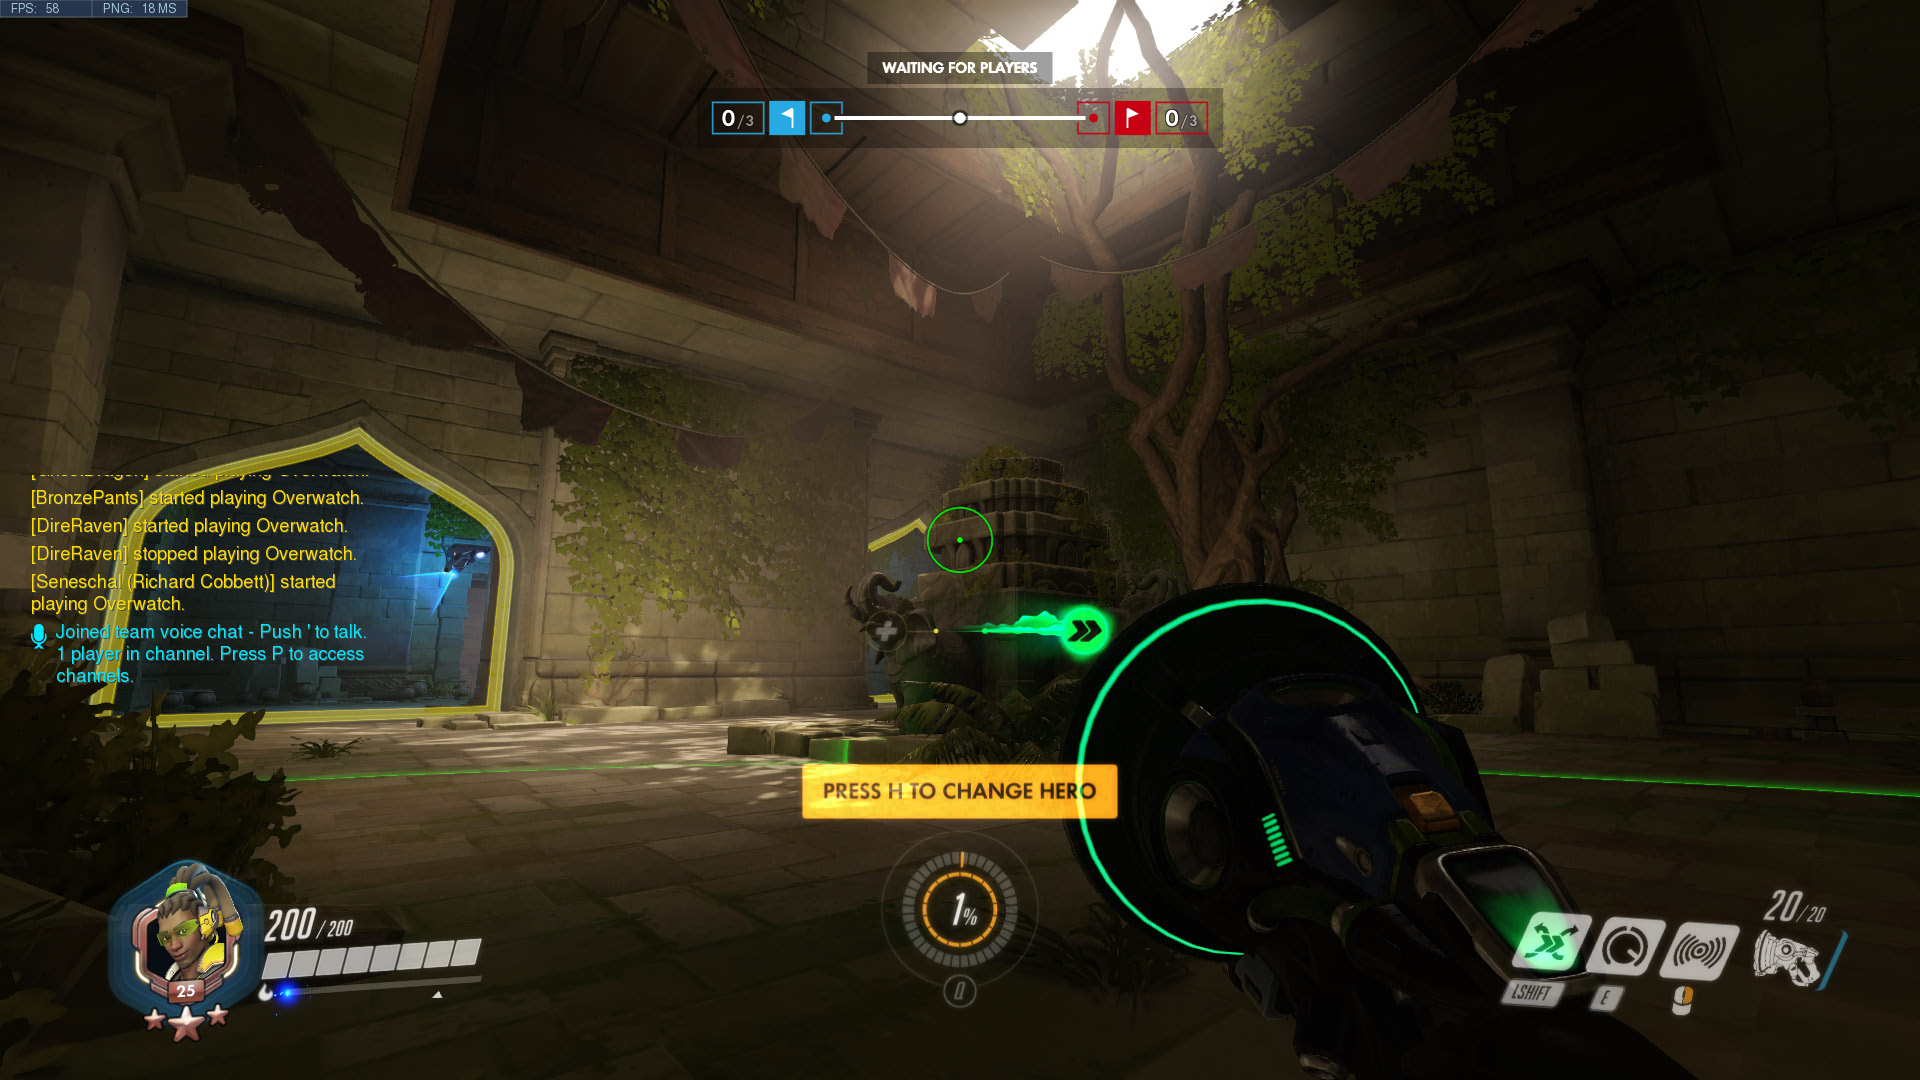 Overwatch: Ayutthaya (Thailand) guide - Tips, tactics and strategy